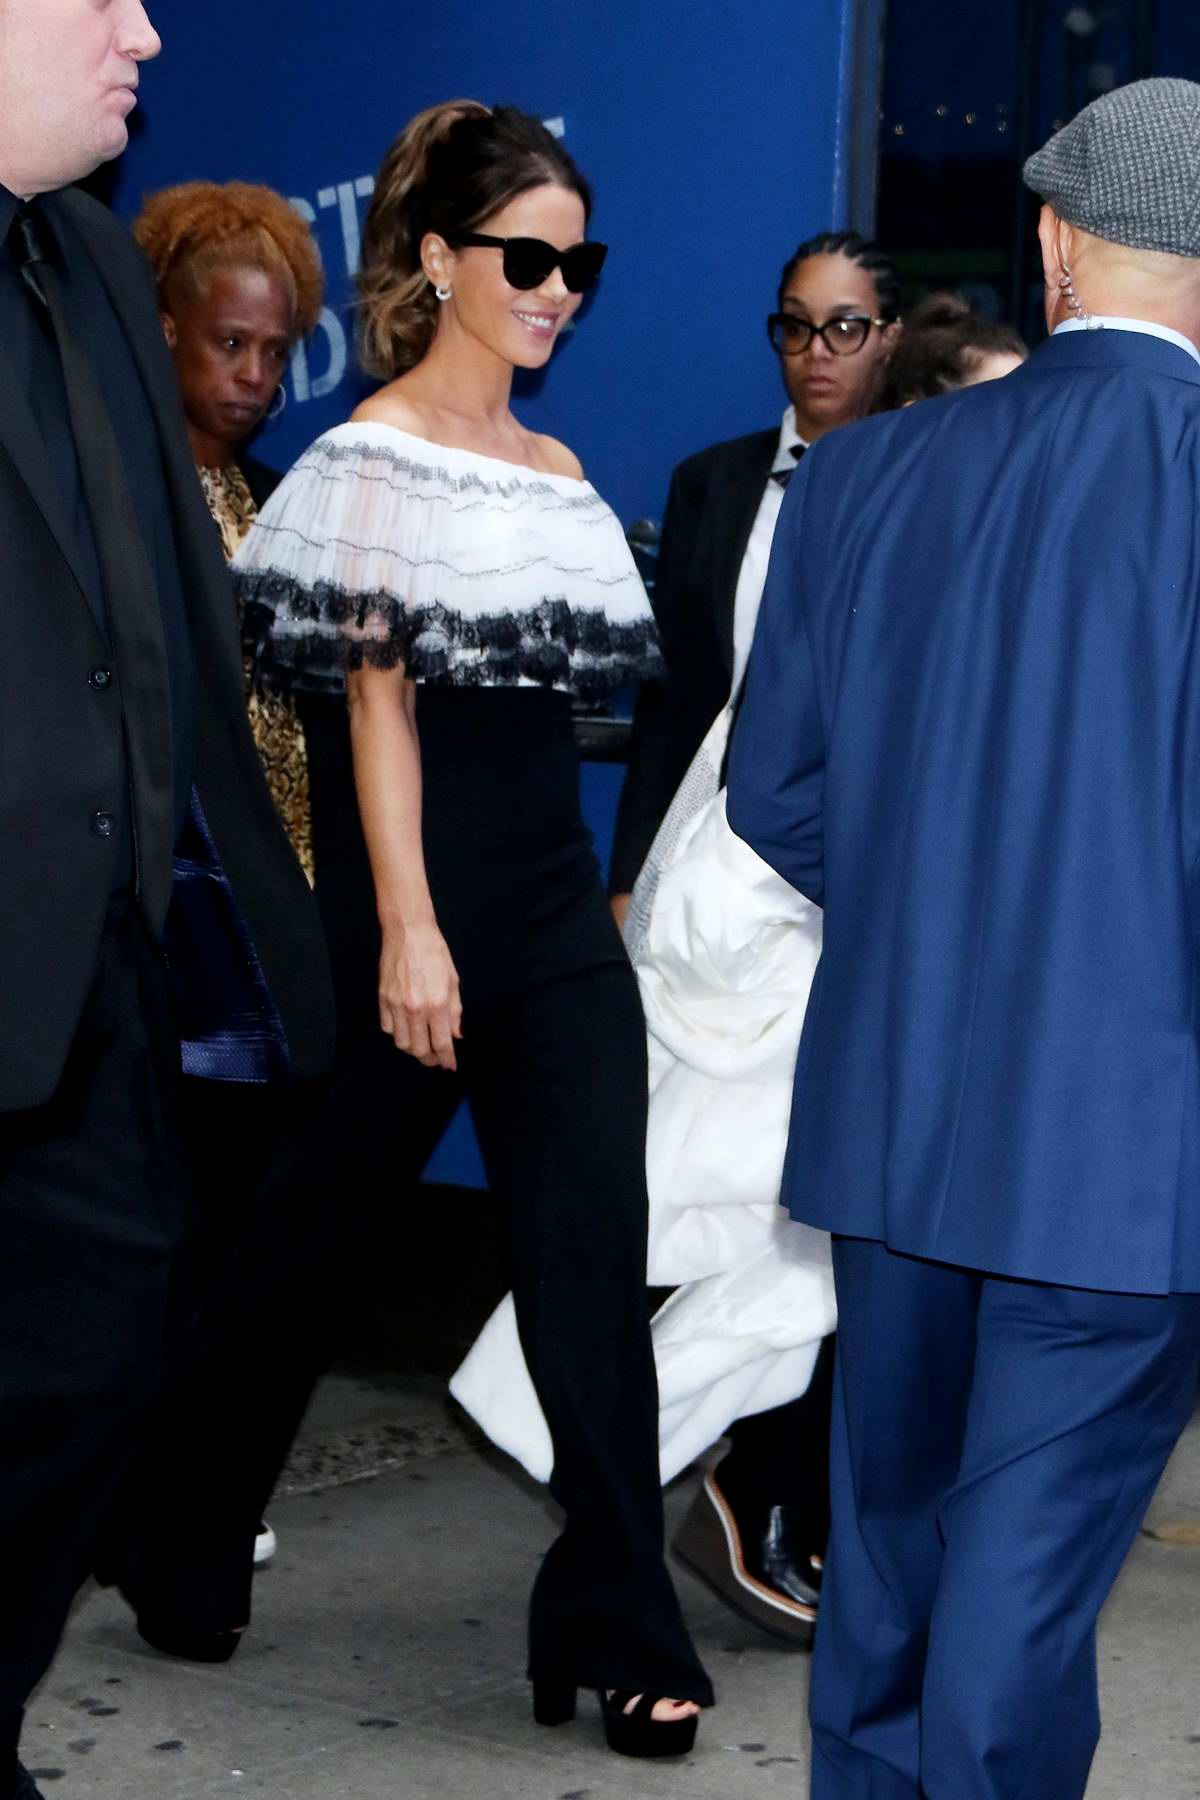 Kate Beckinsale looks great in a black and white ensemble while visiting 'Good Morning America' in New York City